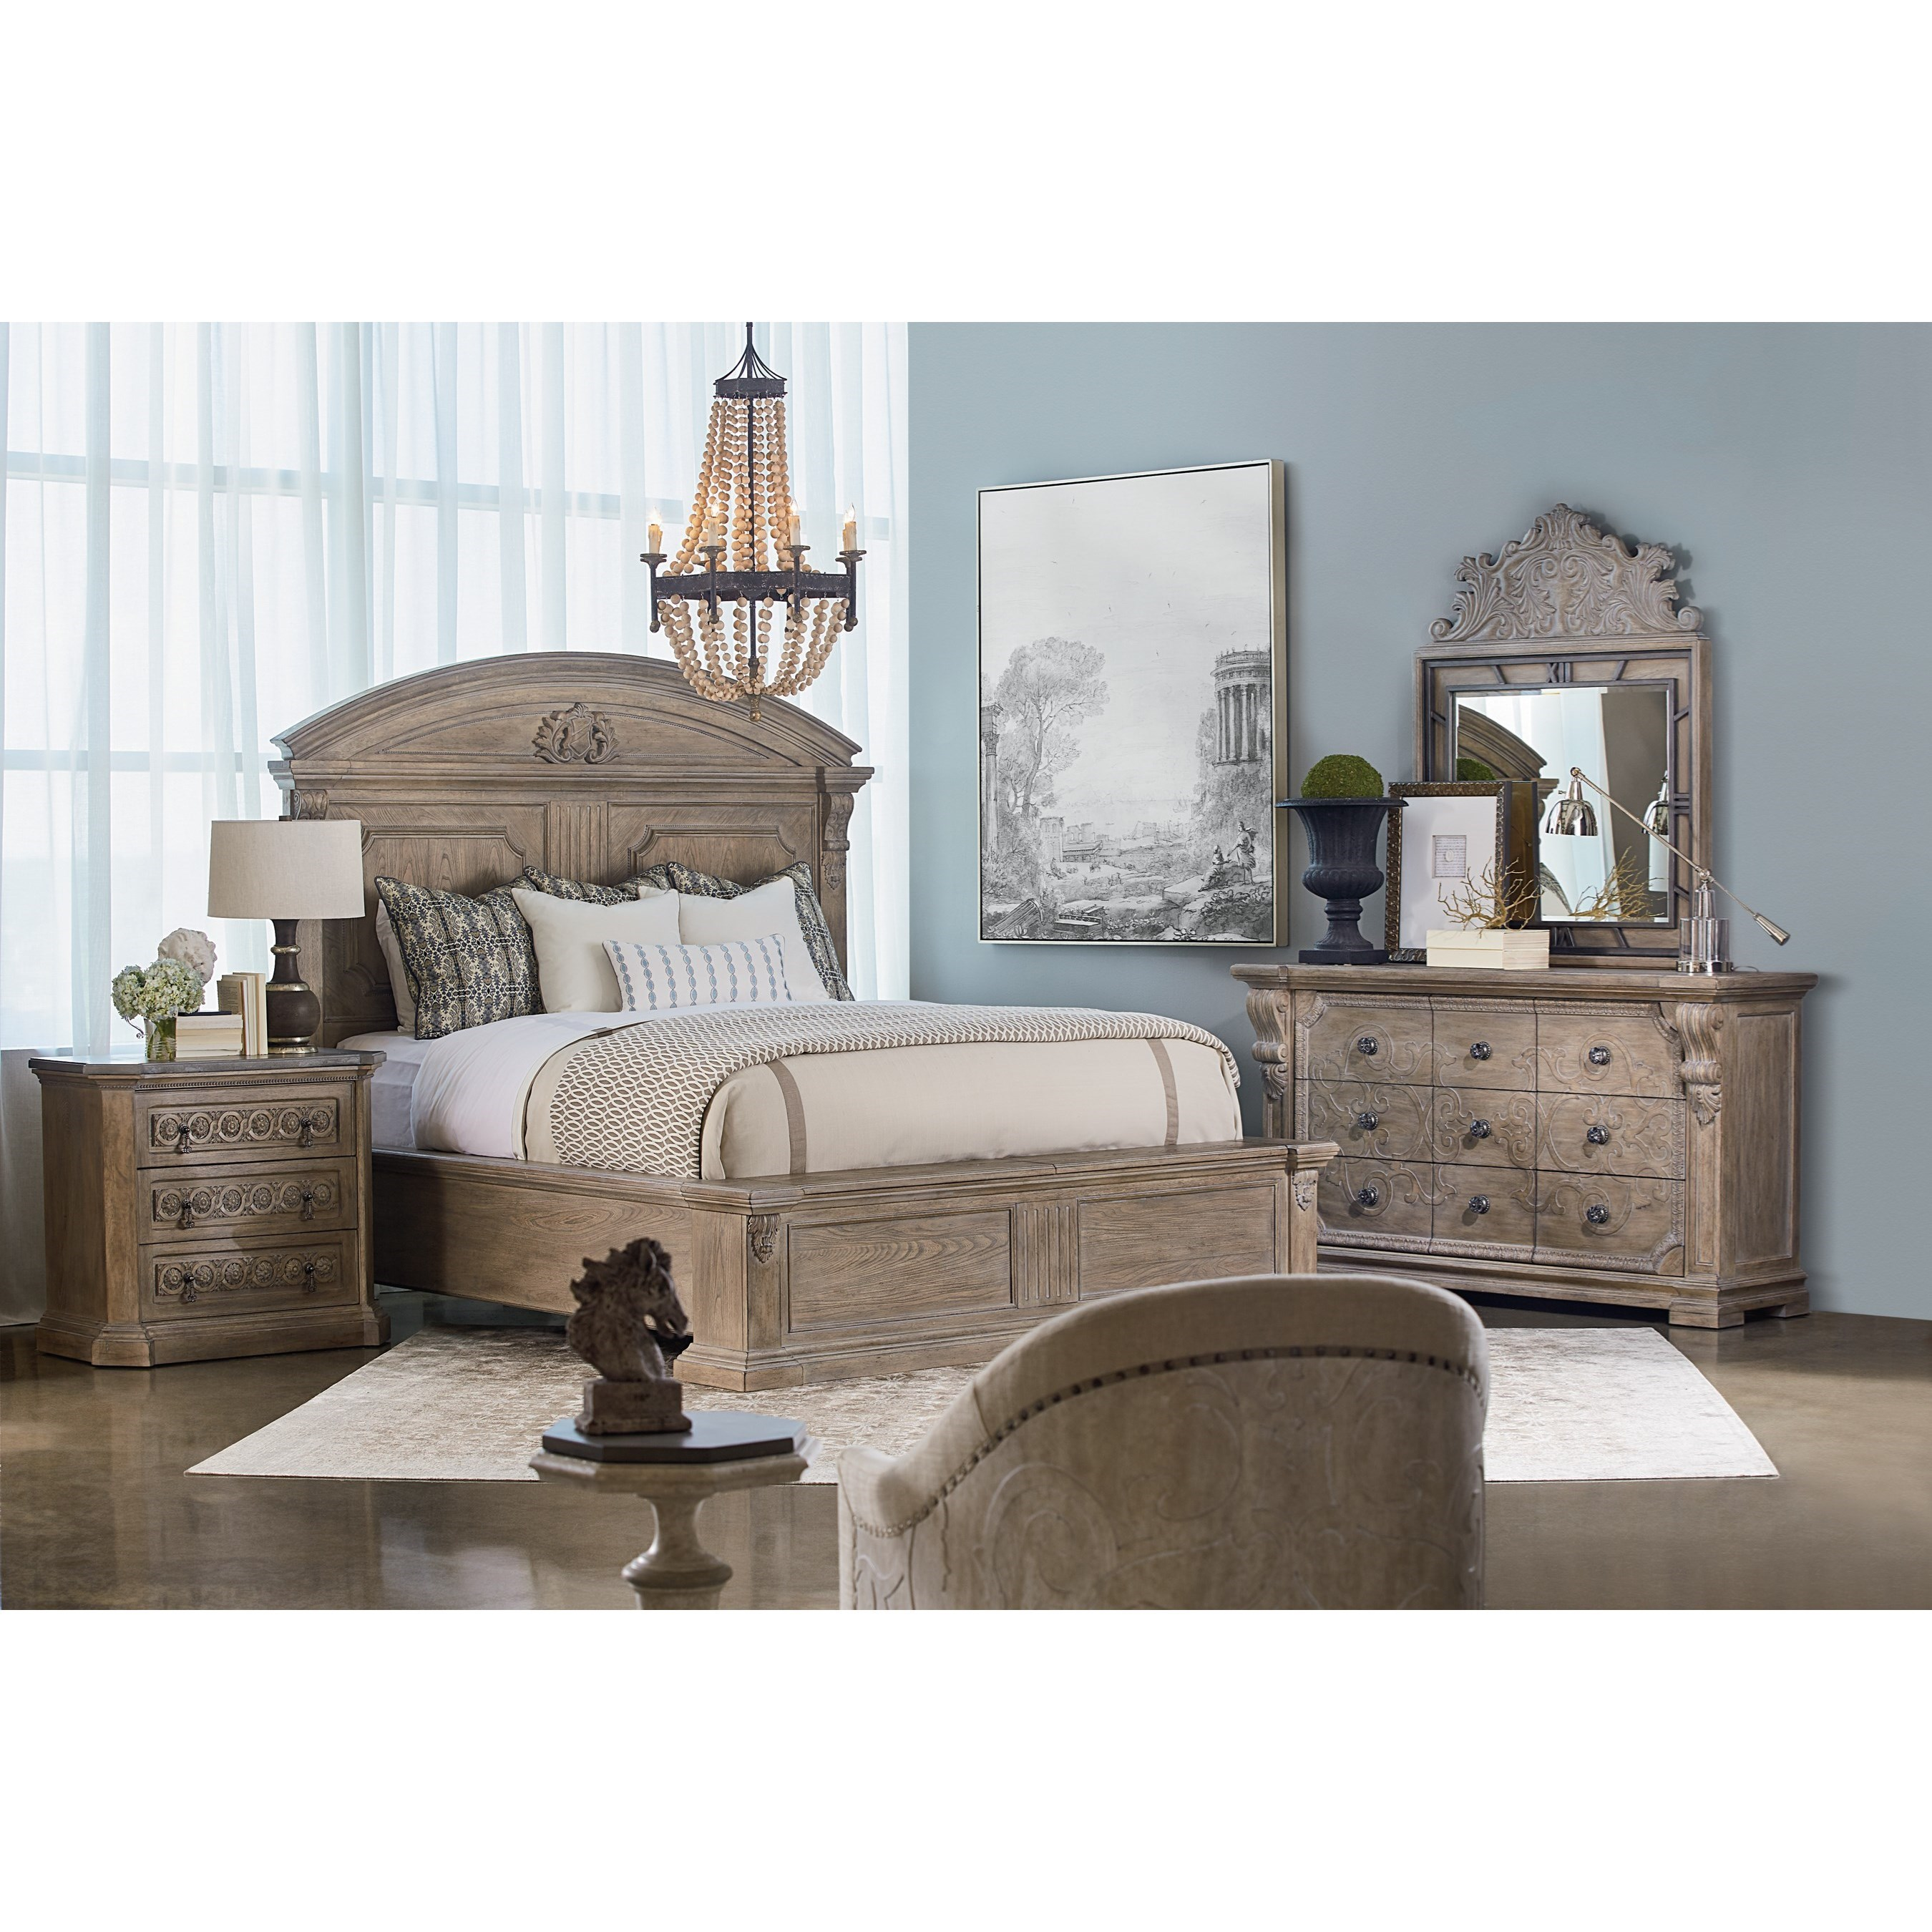 Arch Salvage King Bedroom Group by A.R.T. Furniture Inc at Baer's Furniture